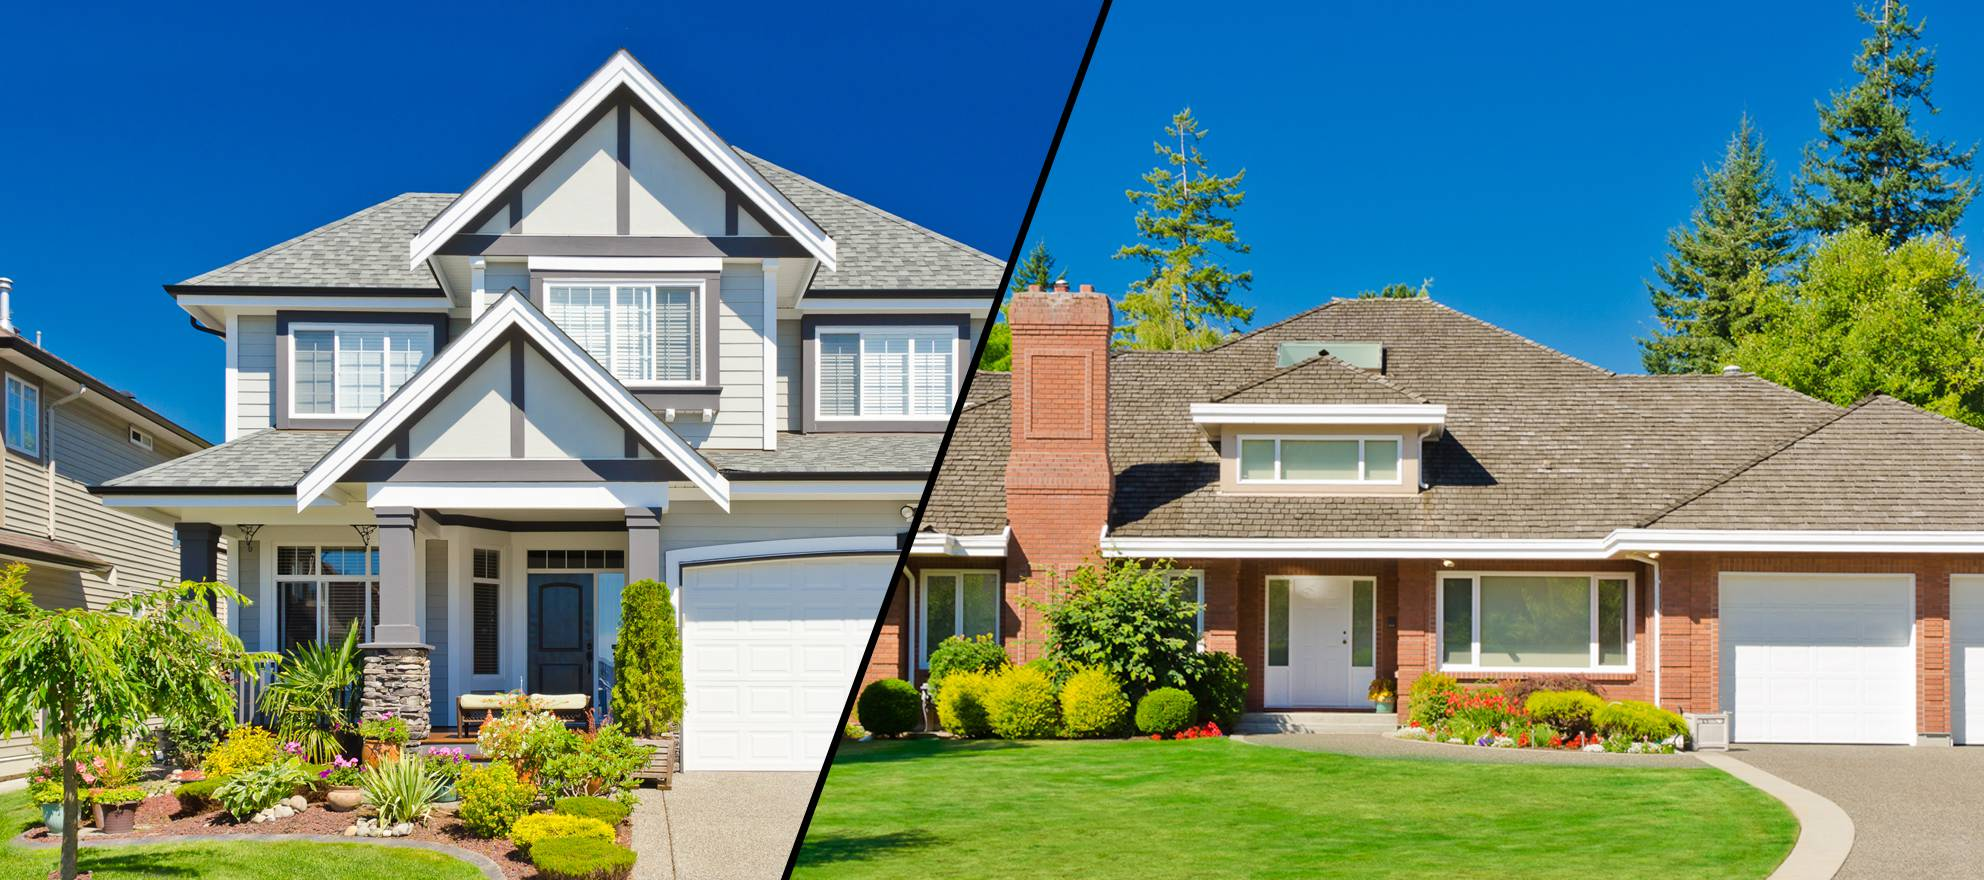 RealScout now letting buyers compare online listings room by room